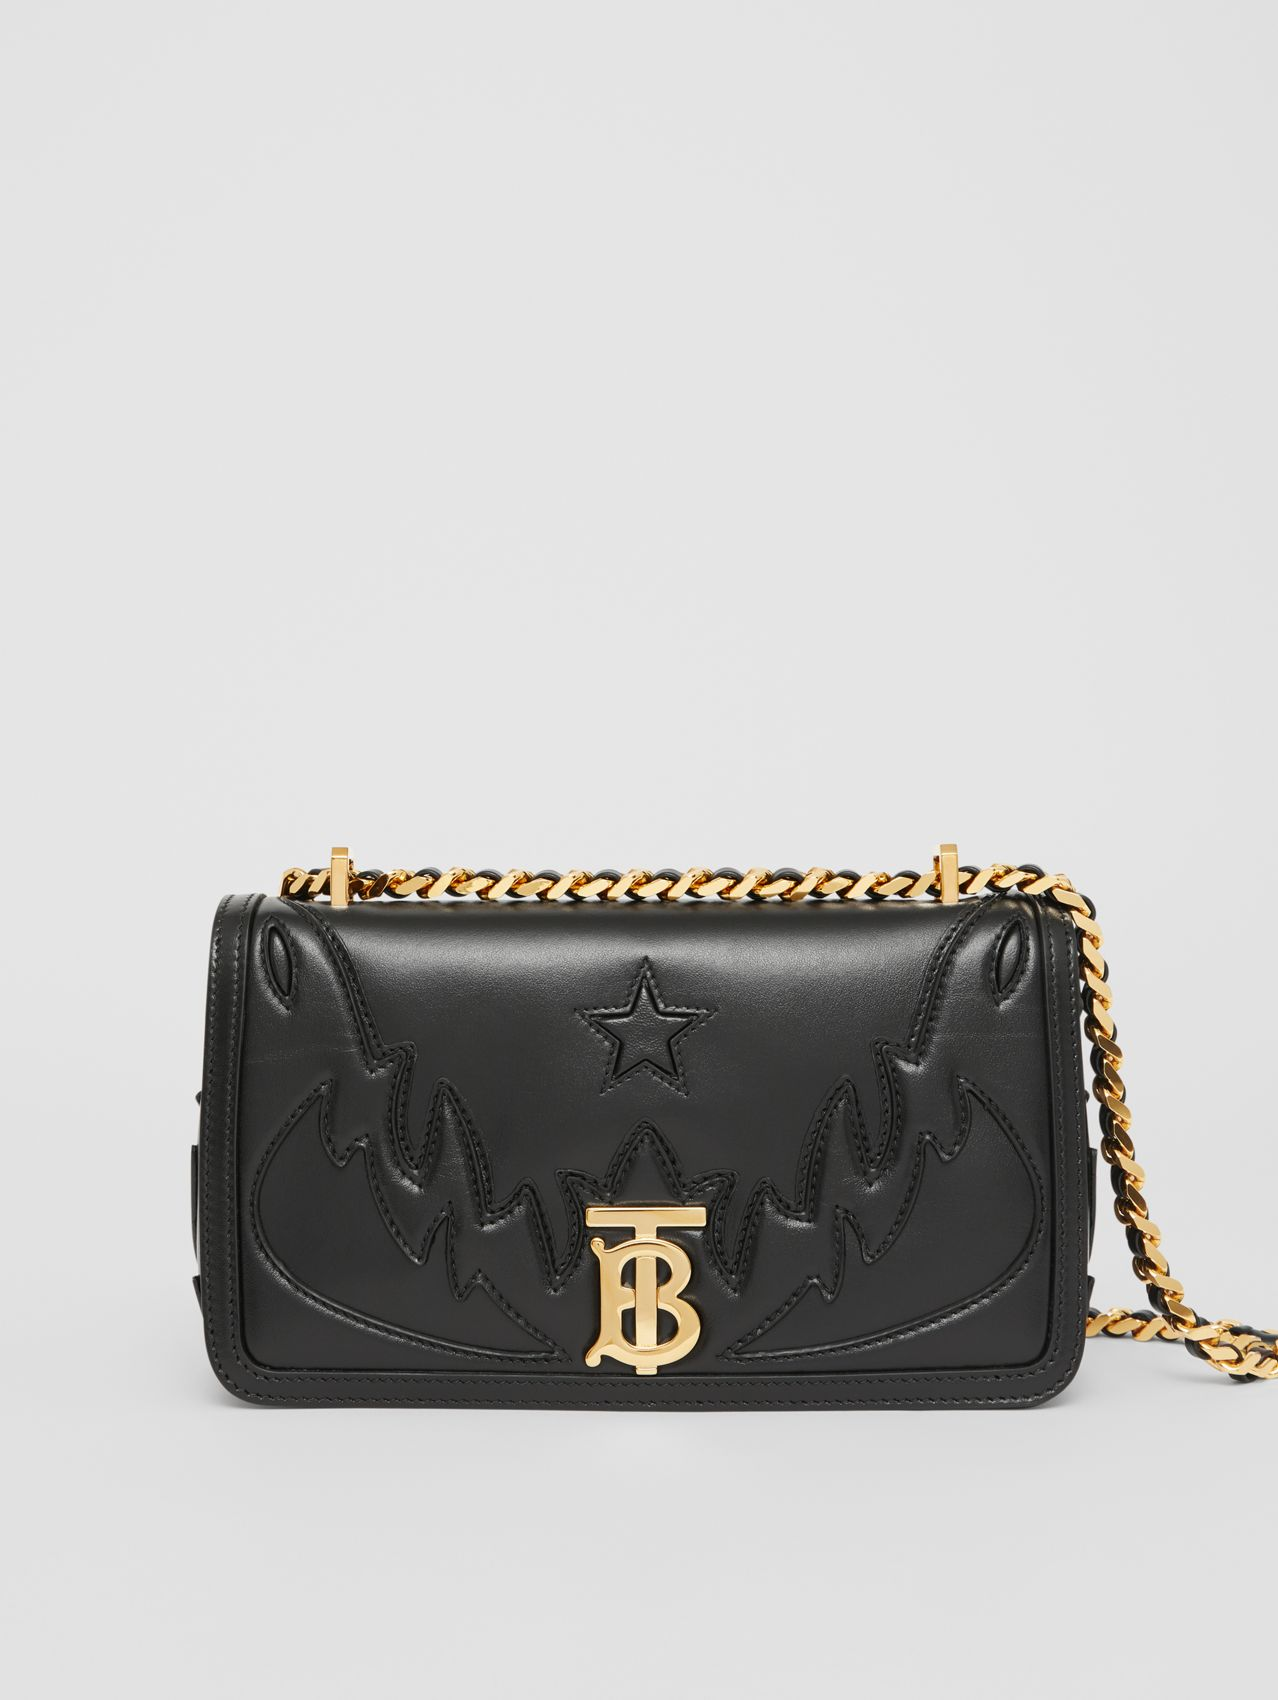 Small Topstitch Appliqué Leather Lola Bag in Black